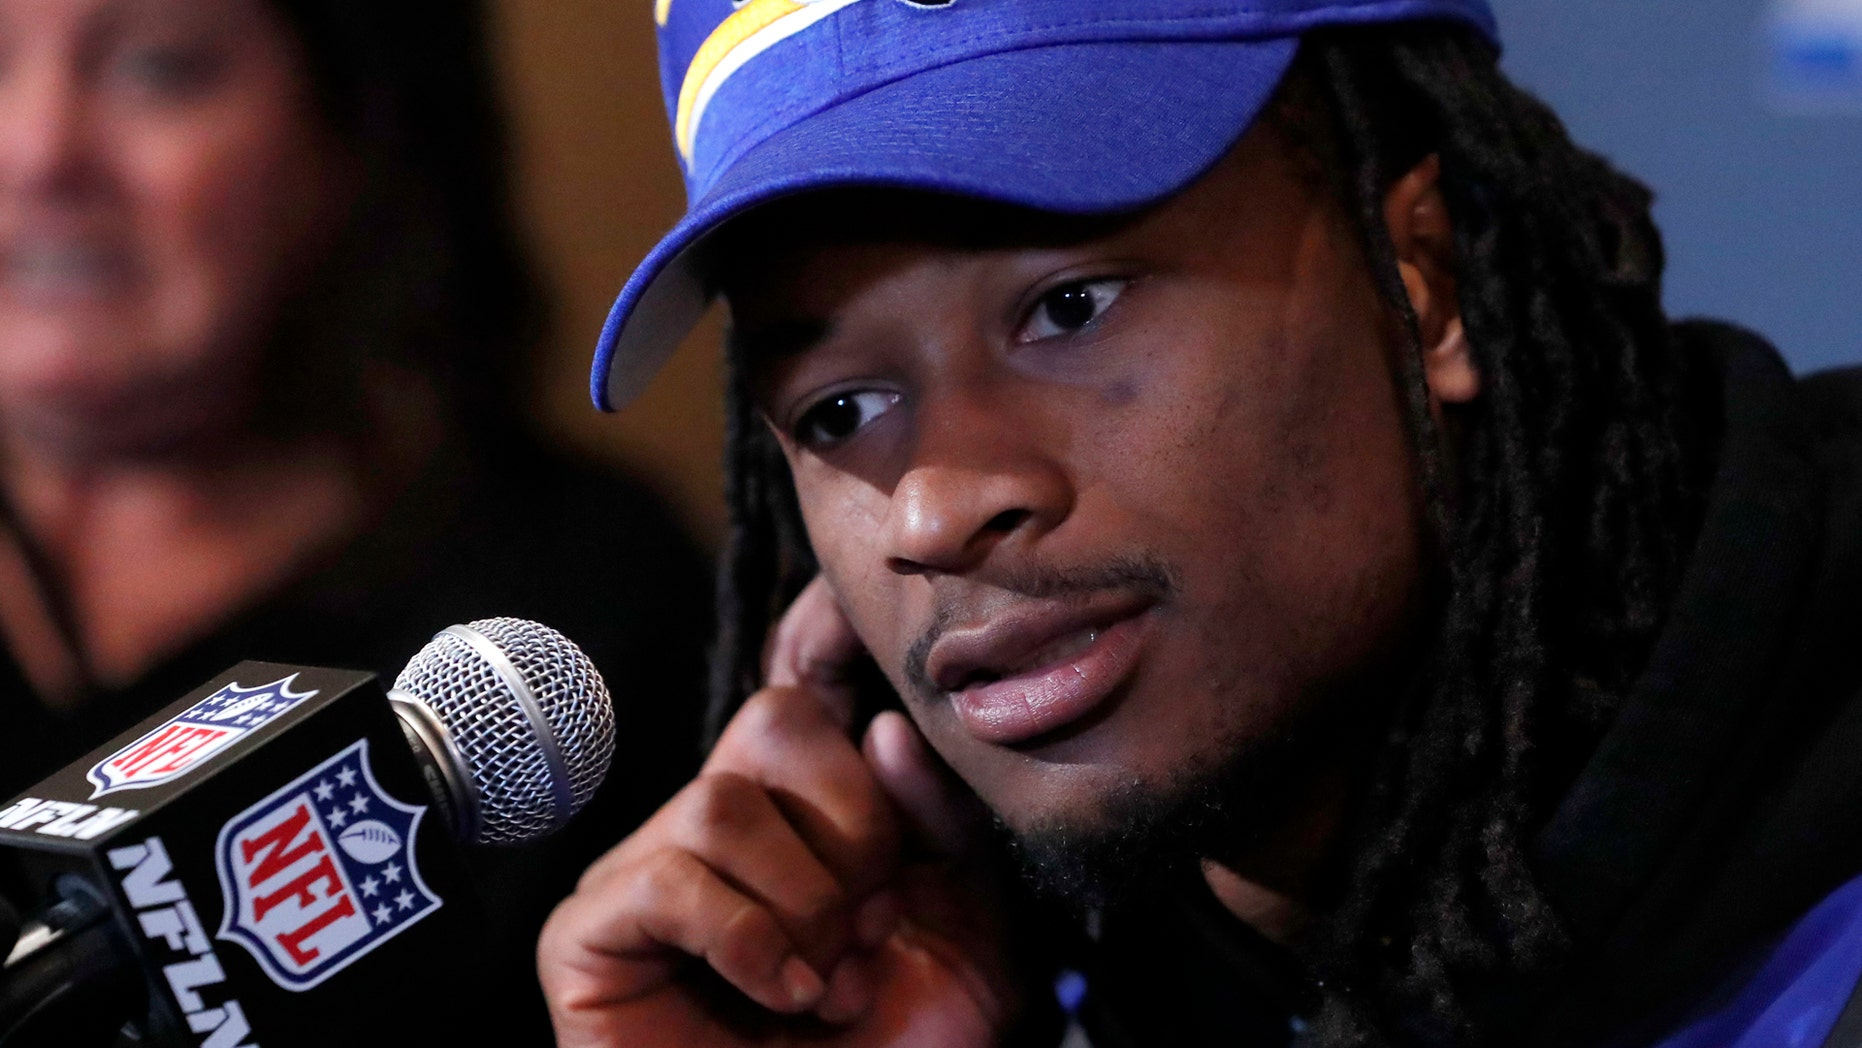 Los Angeles Rams running back Todd Gurley listens to question during a news conference Tuesday, Jan. 29, 2019, in Atlanta, ahead of the NFL Super Bowl 53 football game (AP Photo/John Bazemore)